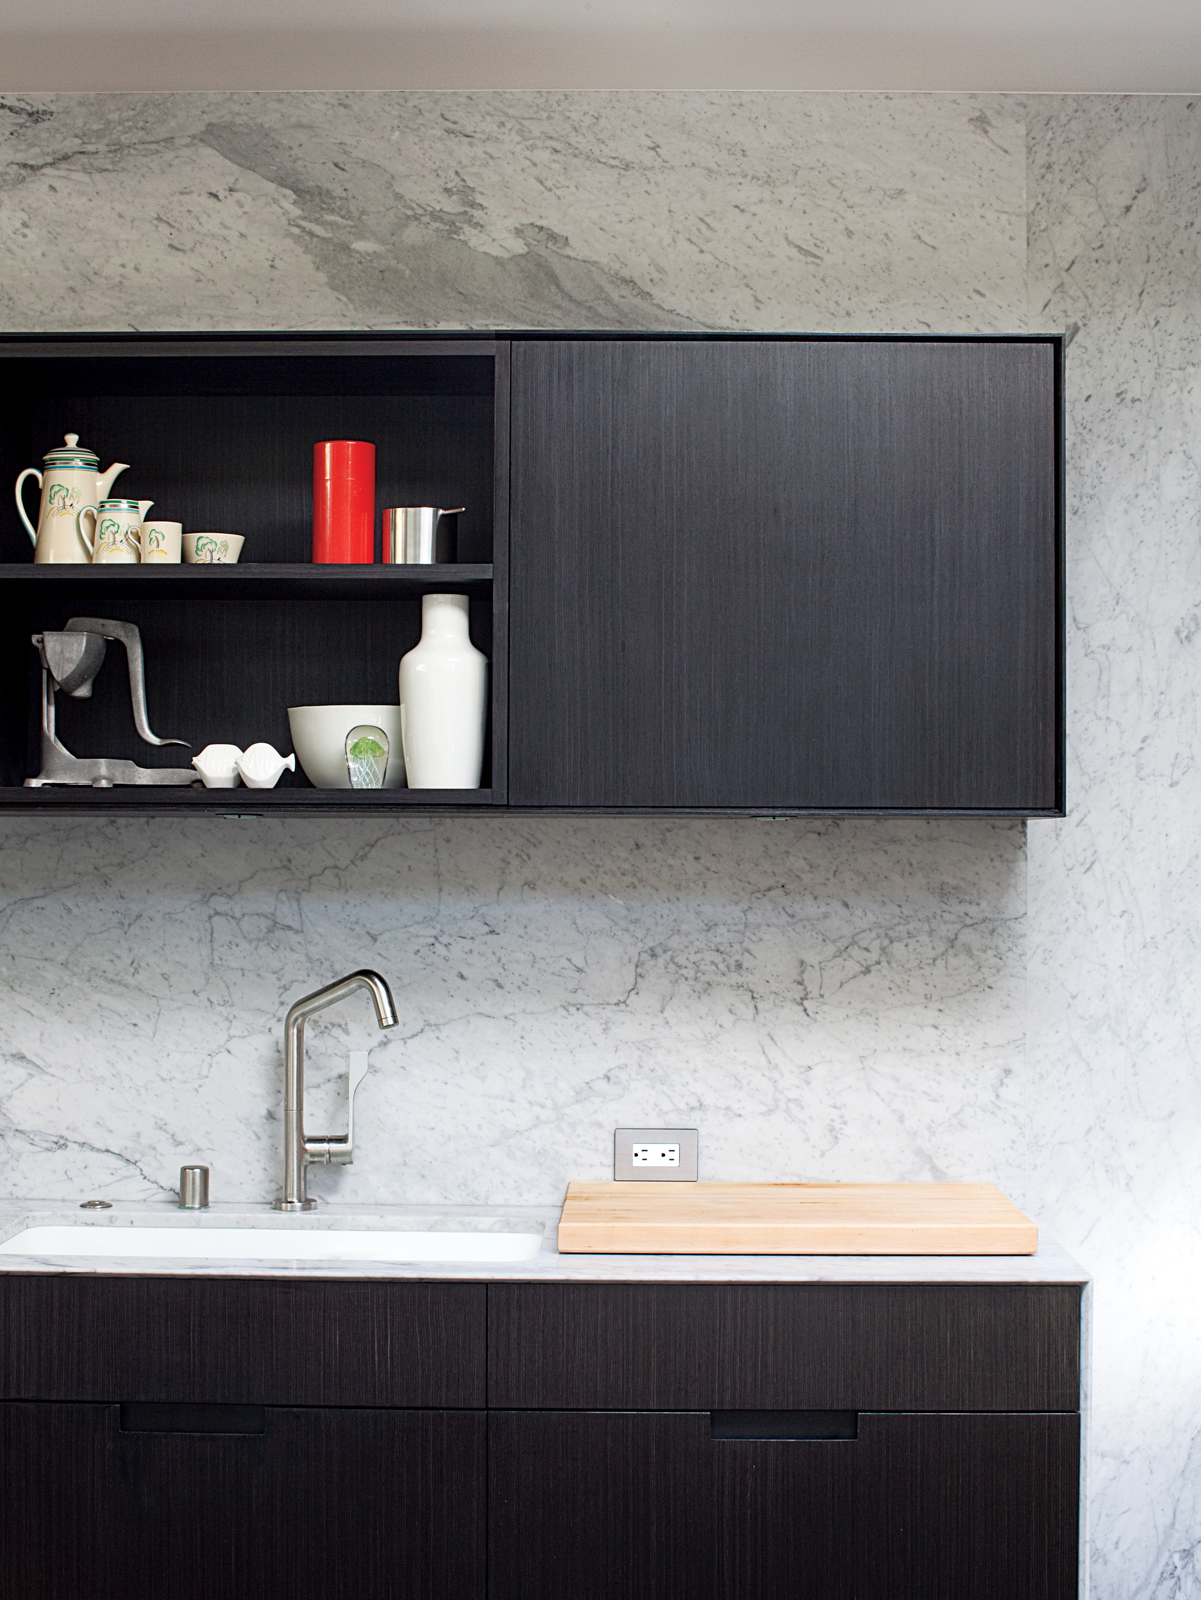 Stained black and painted white cabinets and countertop